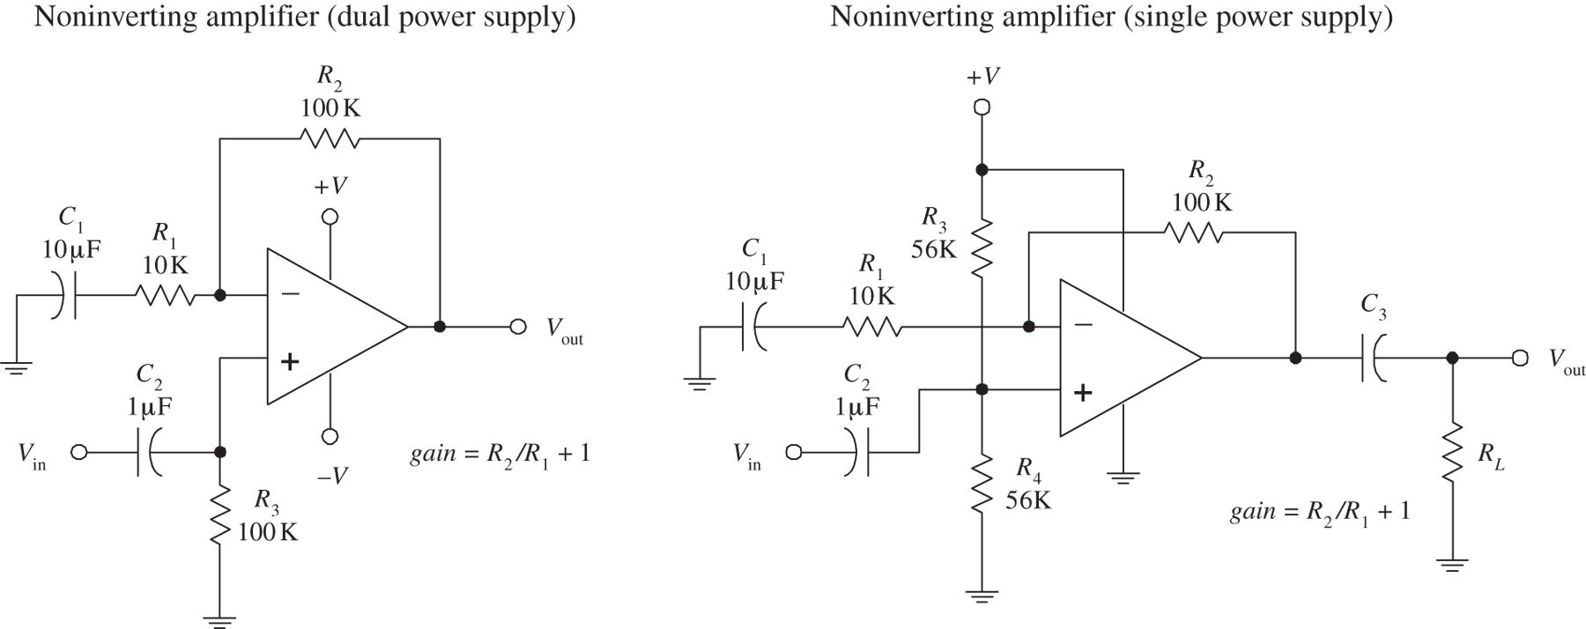 Audio Electronics Practical For Inventors Fourth Amp Circuit Is The Noninverting Amplifier A Figure 167 Components R1 C1 R2 And Biasing Resistors Serve Same Function As Was Seen In Inverting Circuits Input